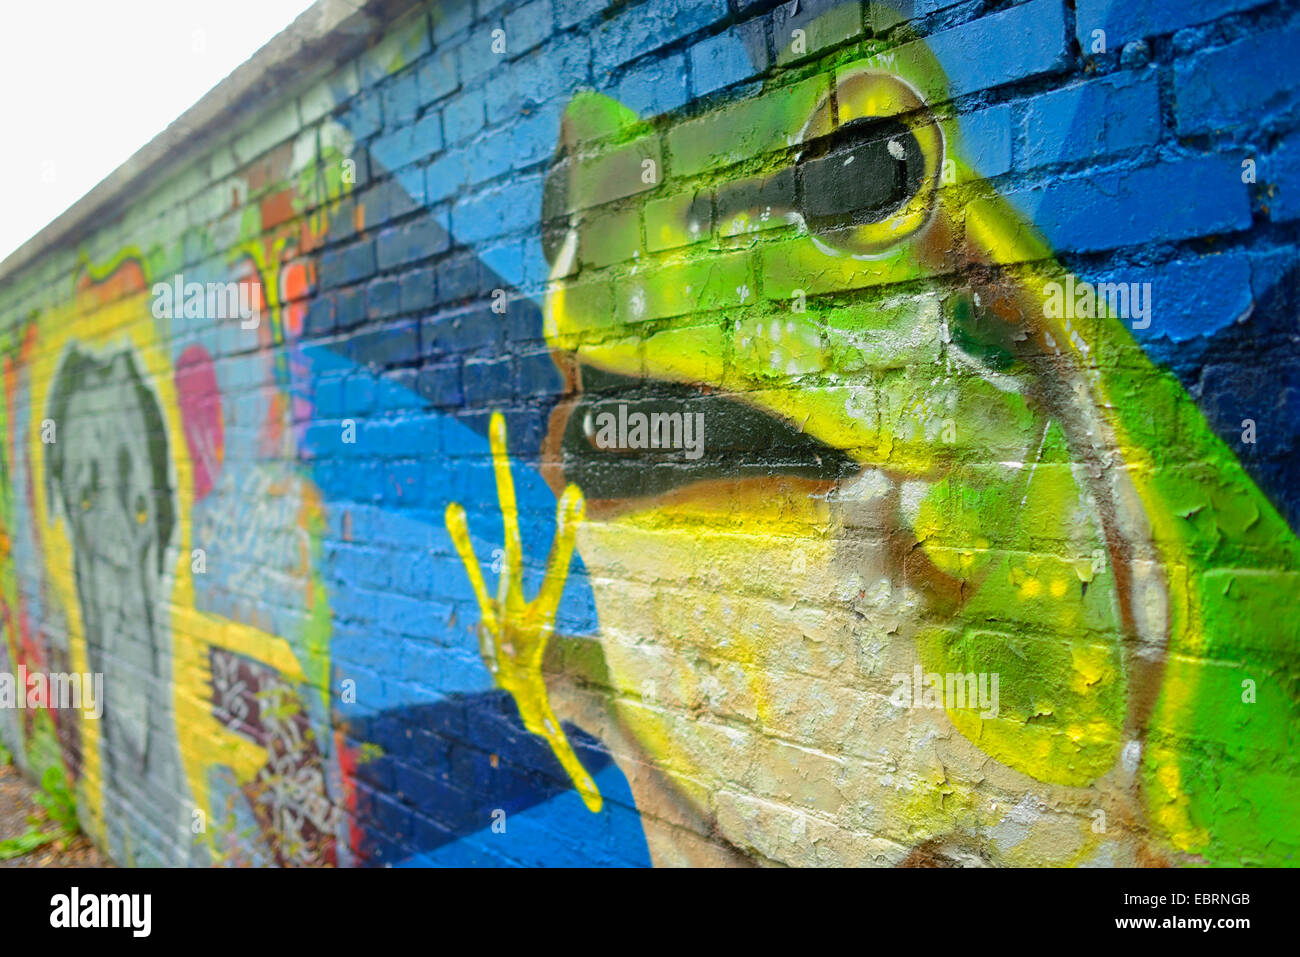 frosch als ein graffiti auf eine mauer deutschland bayern stein stockfoto bild 76124507 alamy. Black Bedroom Furniture Sets. Home Design Ideas